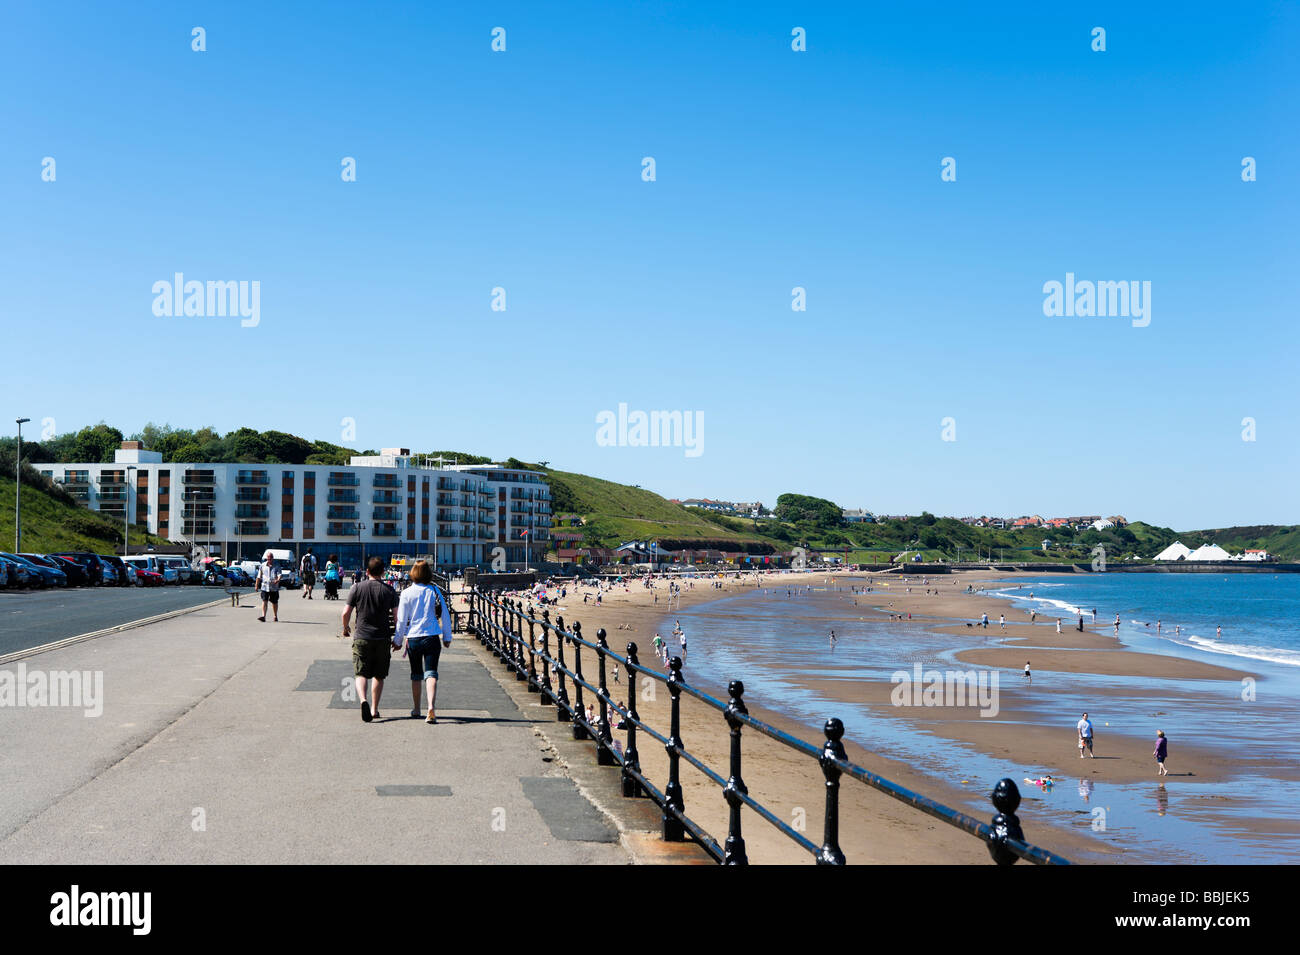 North Bay beach, Scarborough, East Coast, North Yorkshire, England - Stock Image